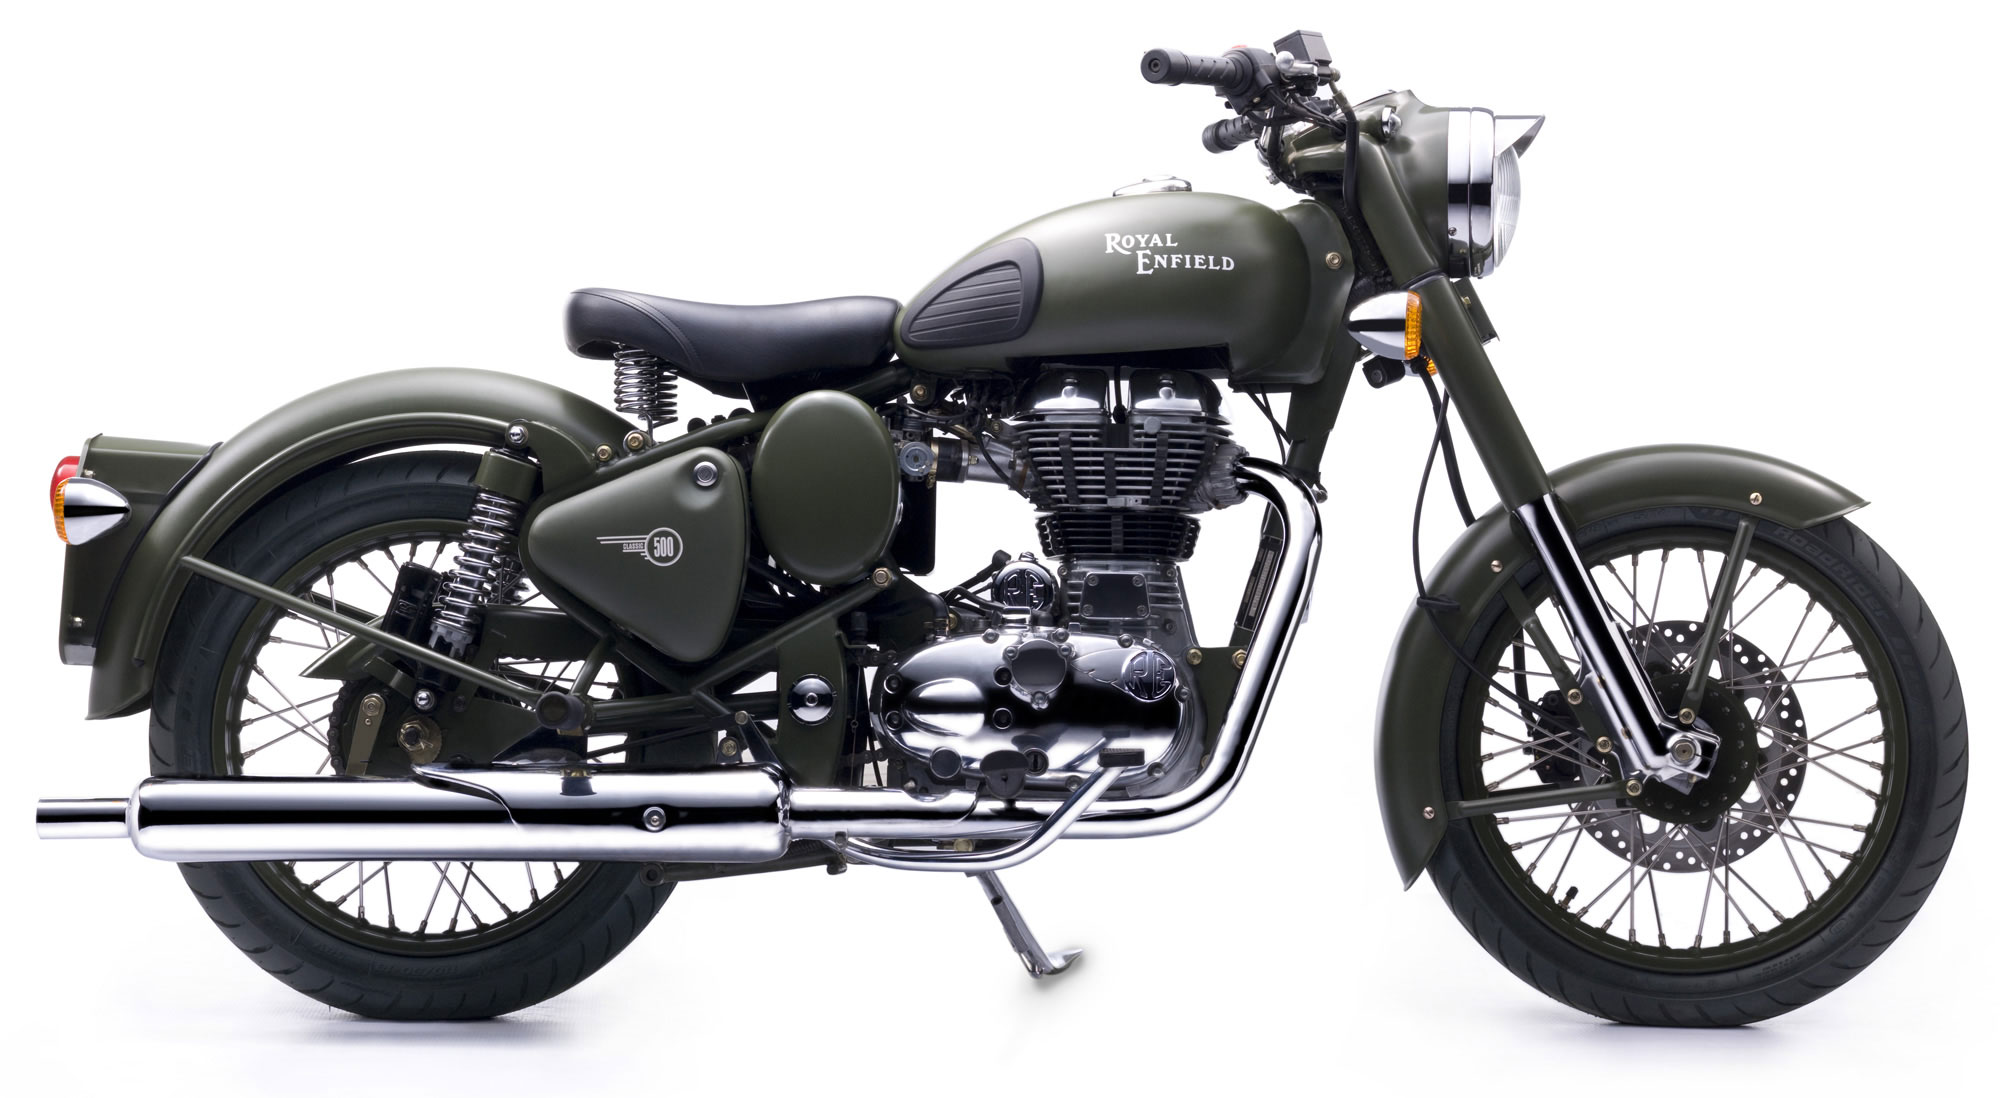 Royal Enfield Bullet 350 Army 2001 images #123110